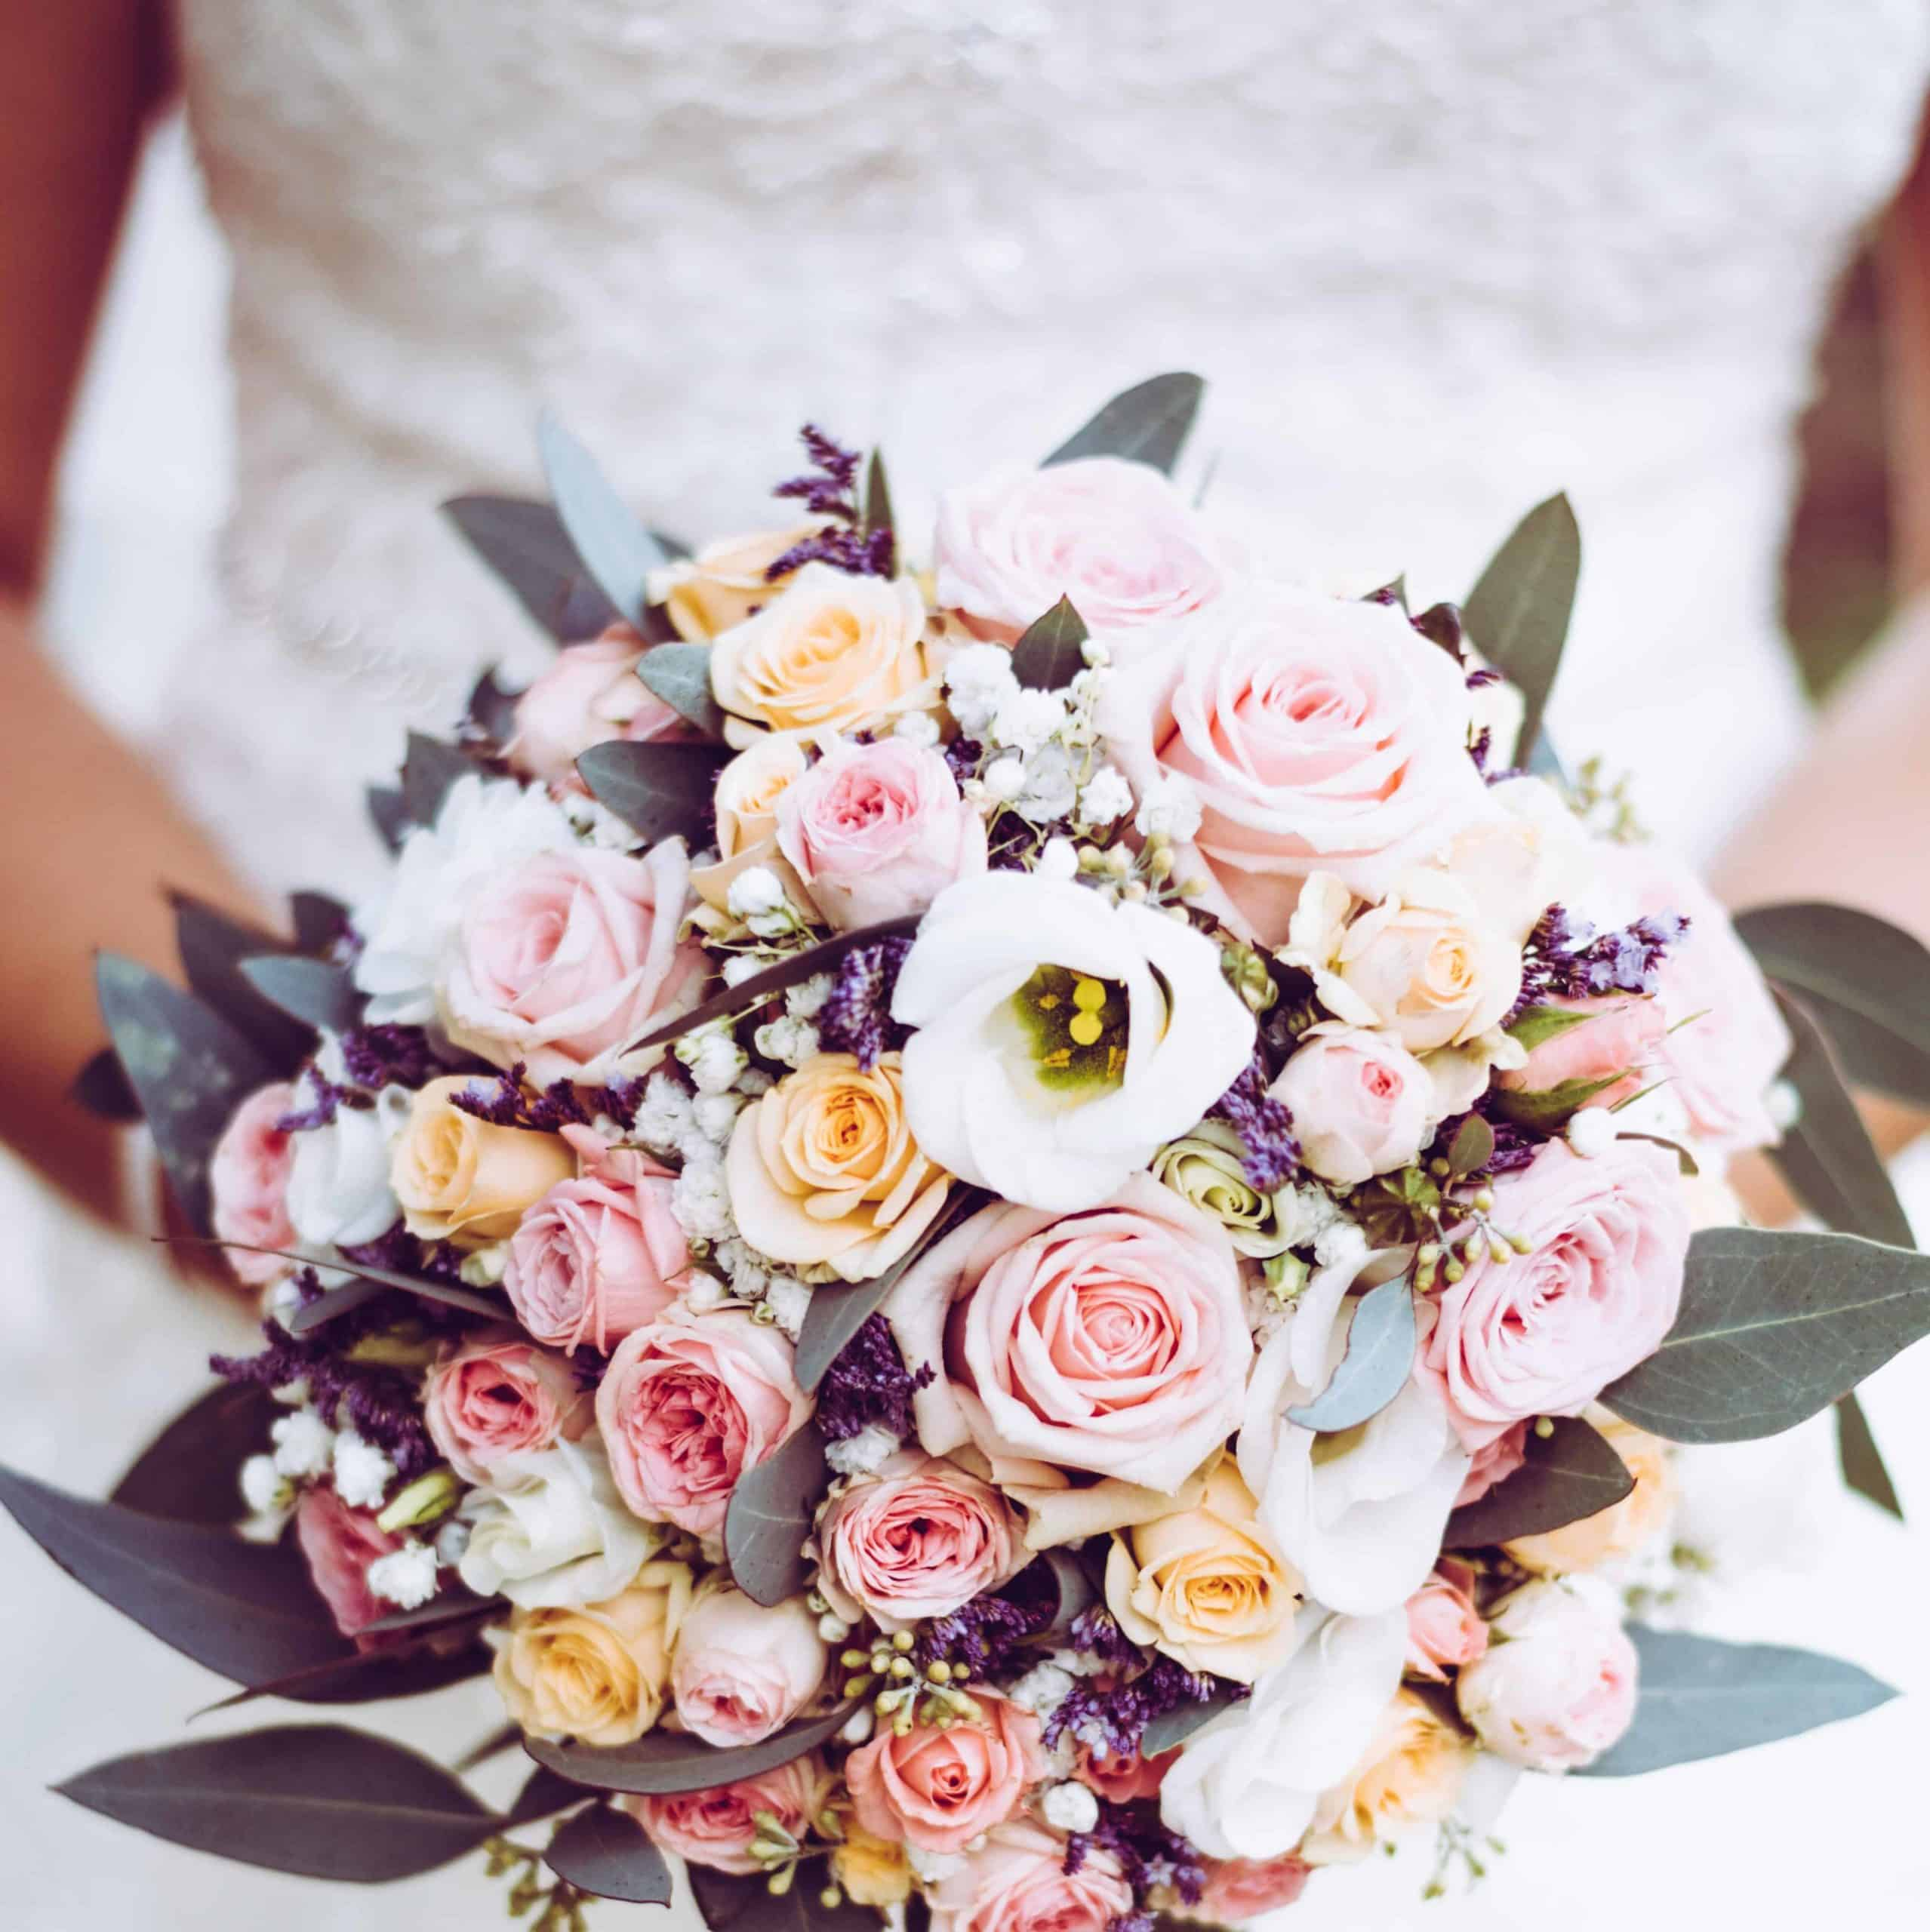 A bride holding her bouquet.